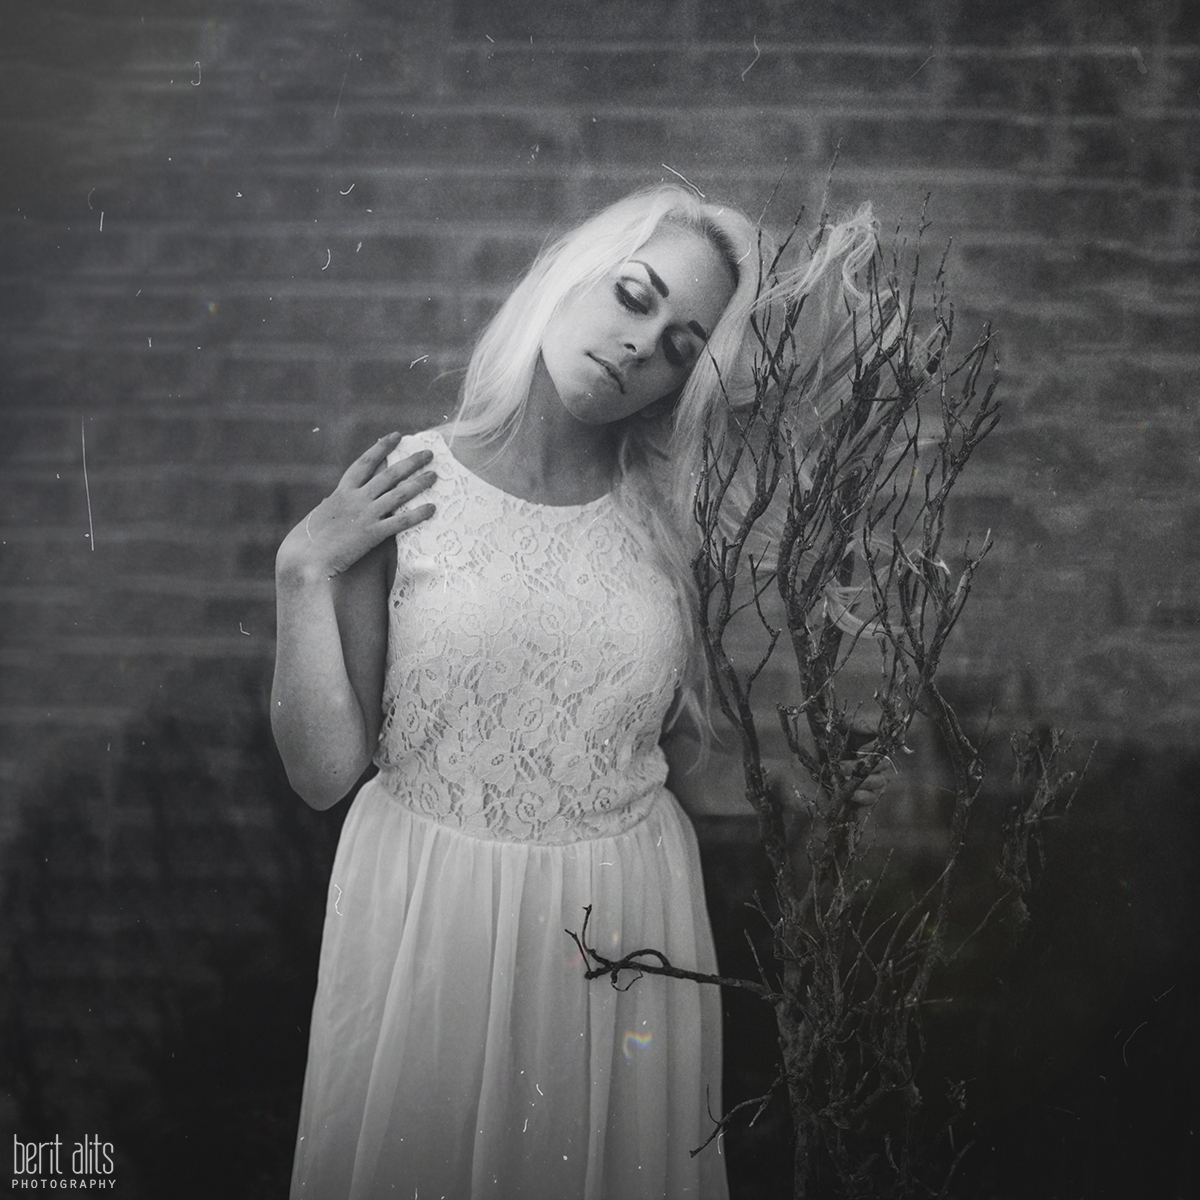 05_dancer_white_dress_black_and_white_artistic_conceptual_nikon_d800_50_mm_f1.4_clonmel_photography_photographer_ireland_tipperary_dreamy_